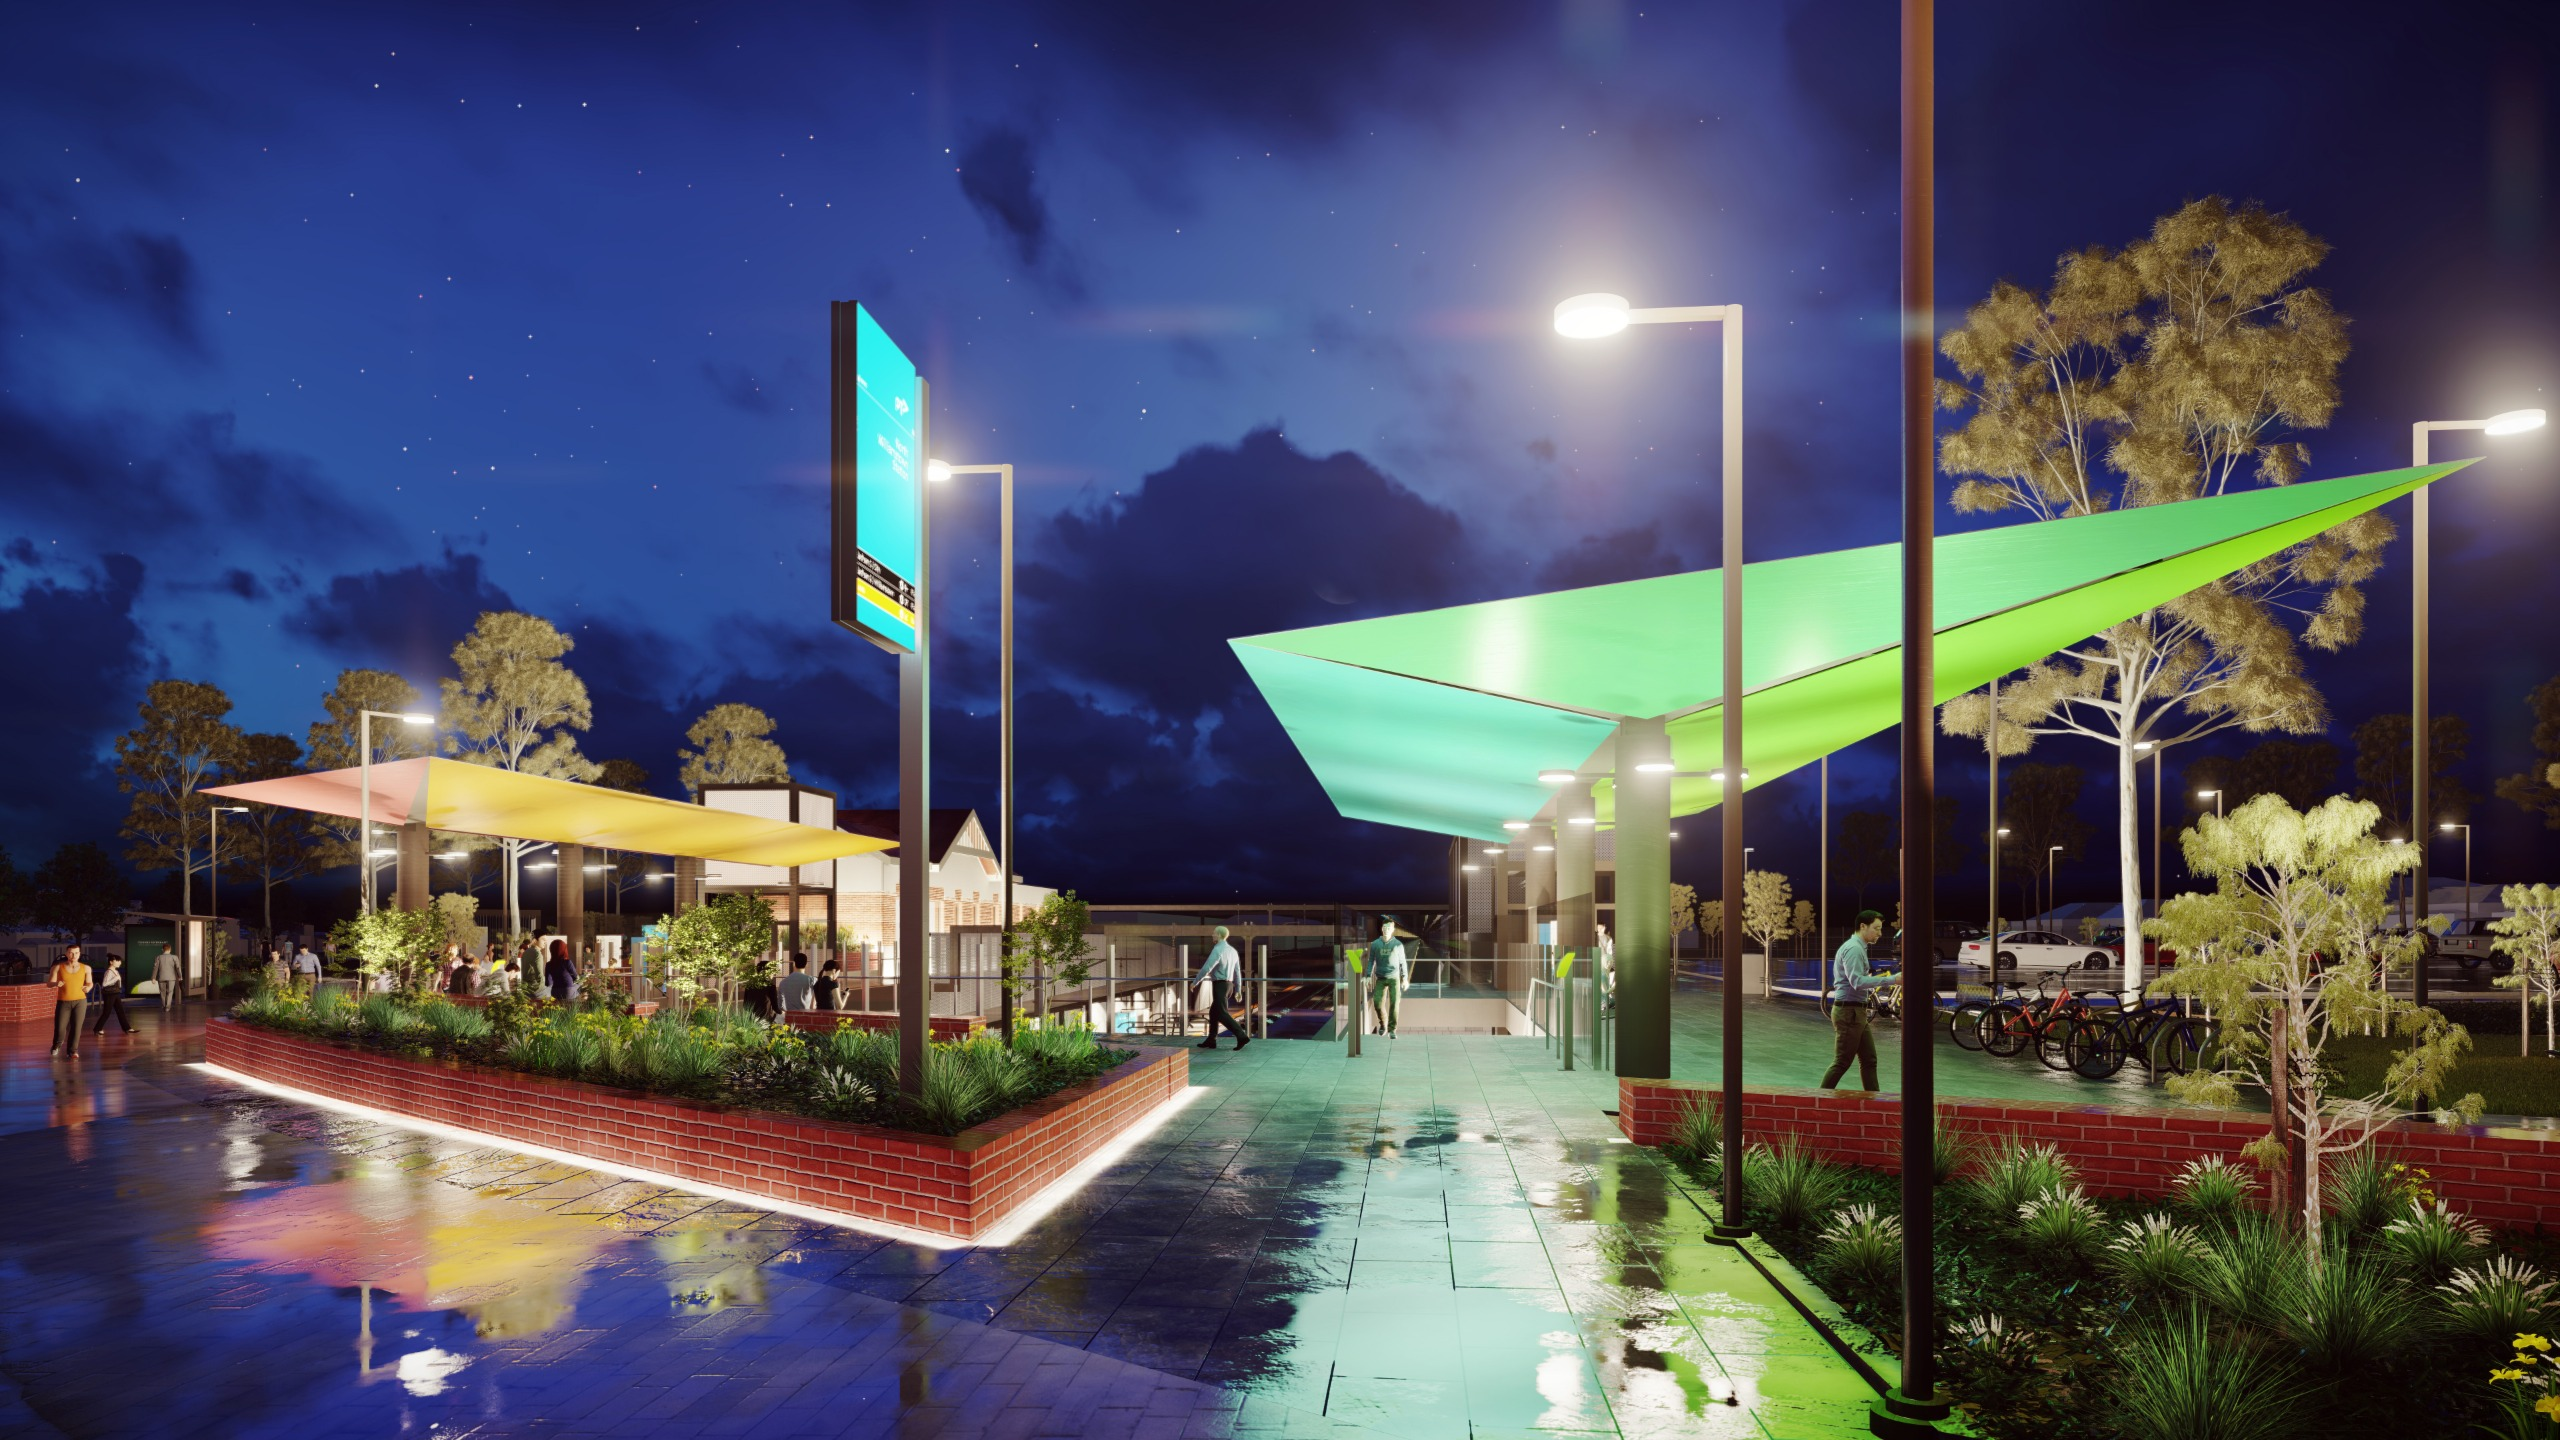 The new station forecourt will be well-lit for safety